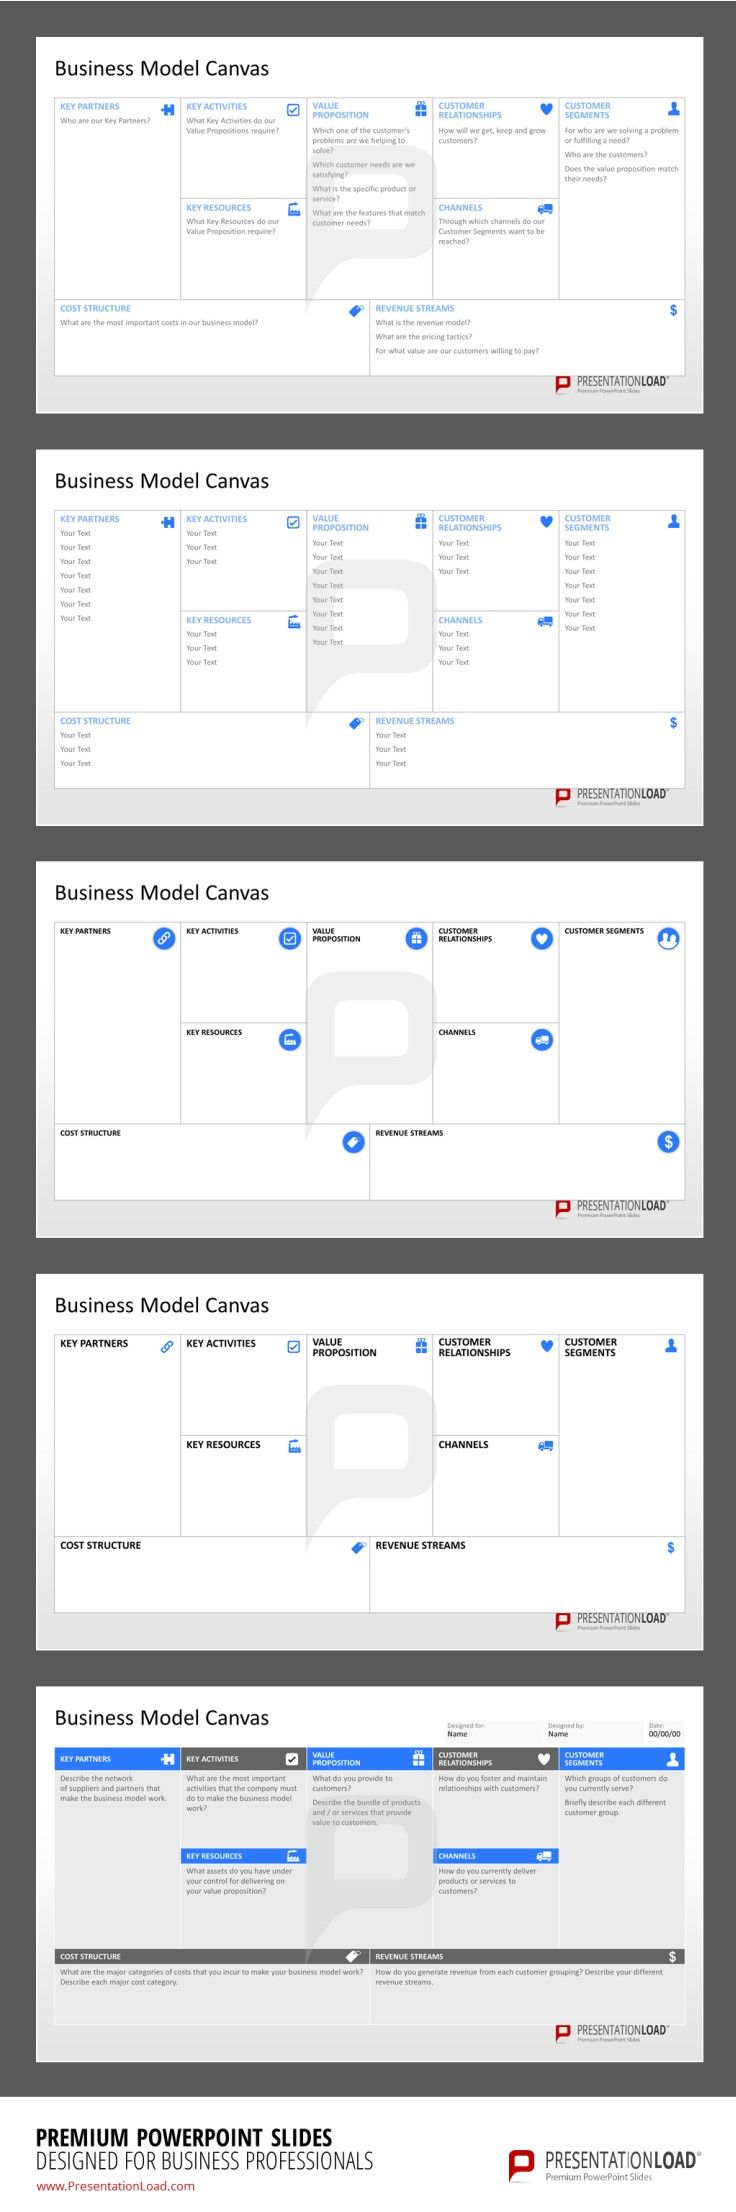 Business Model Canvas PowerPoint Template The pre-designed grid of the Business Model Canvas provides the perfect foundation to transform the essential elements of a business model intuitively into a scalable system. #presentationload www.presentationl...